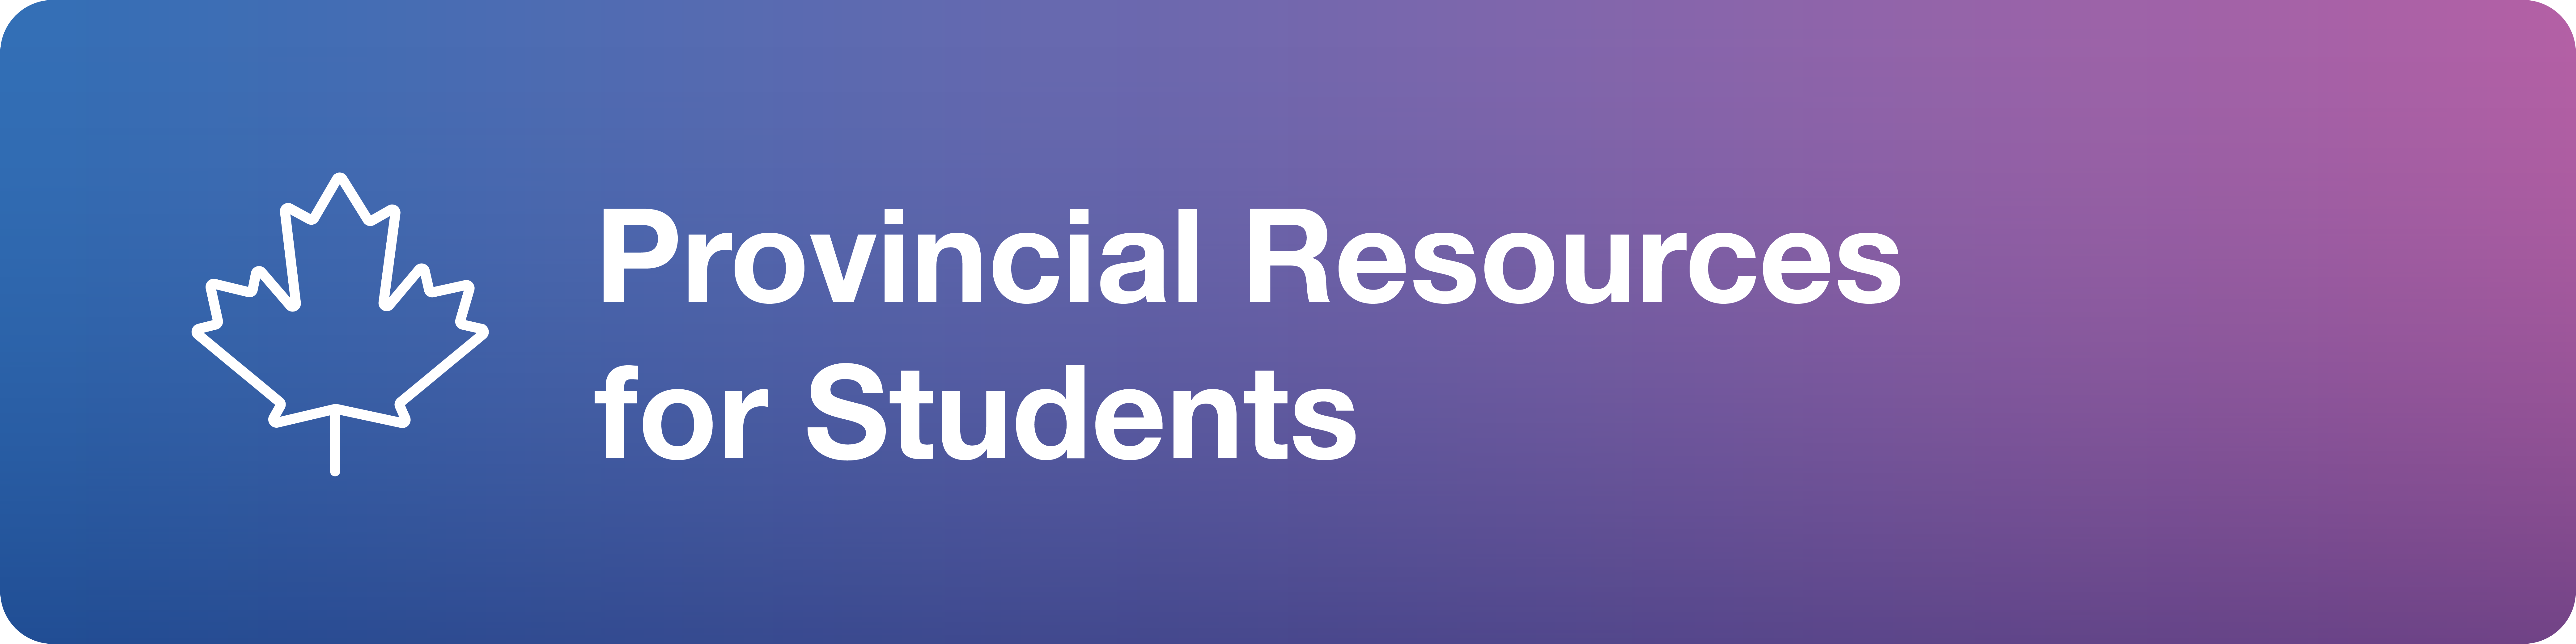 Provincial resources for students